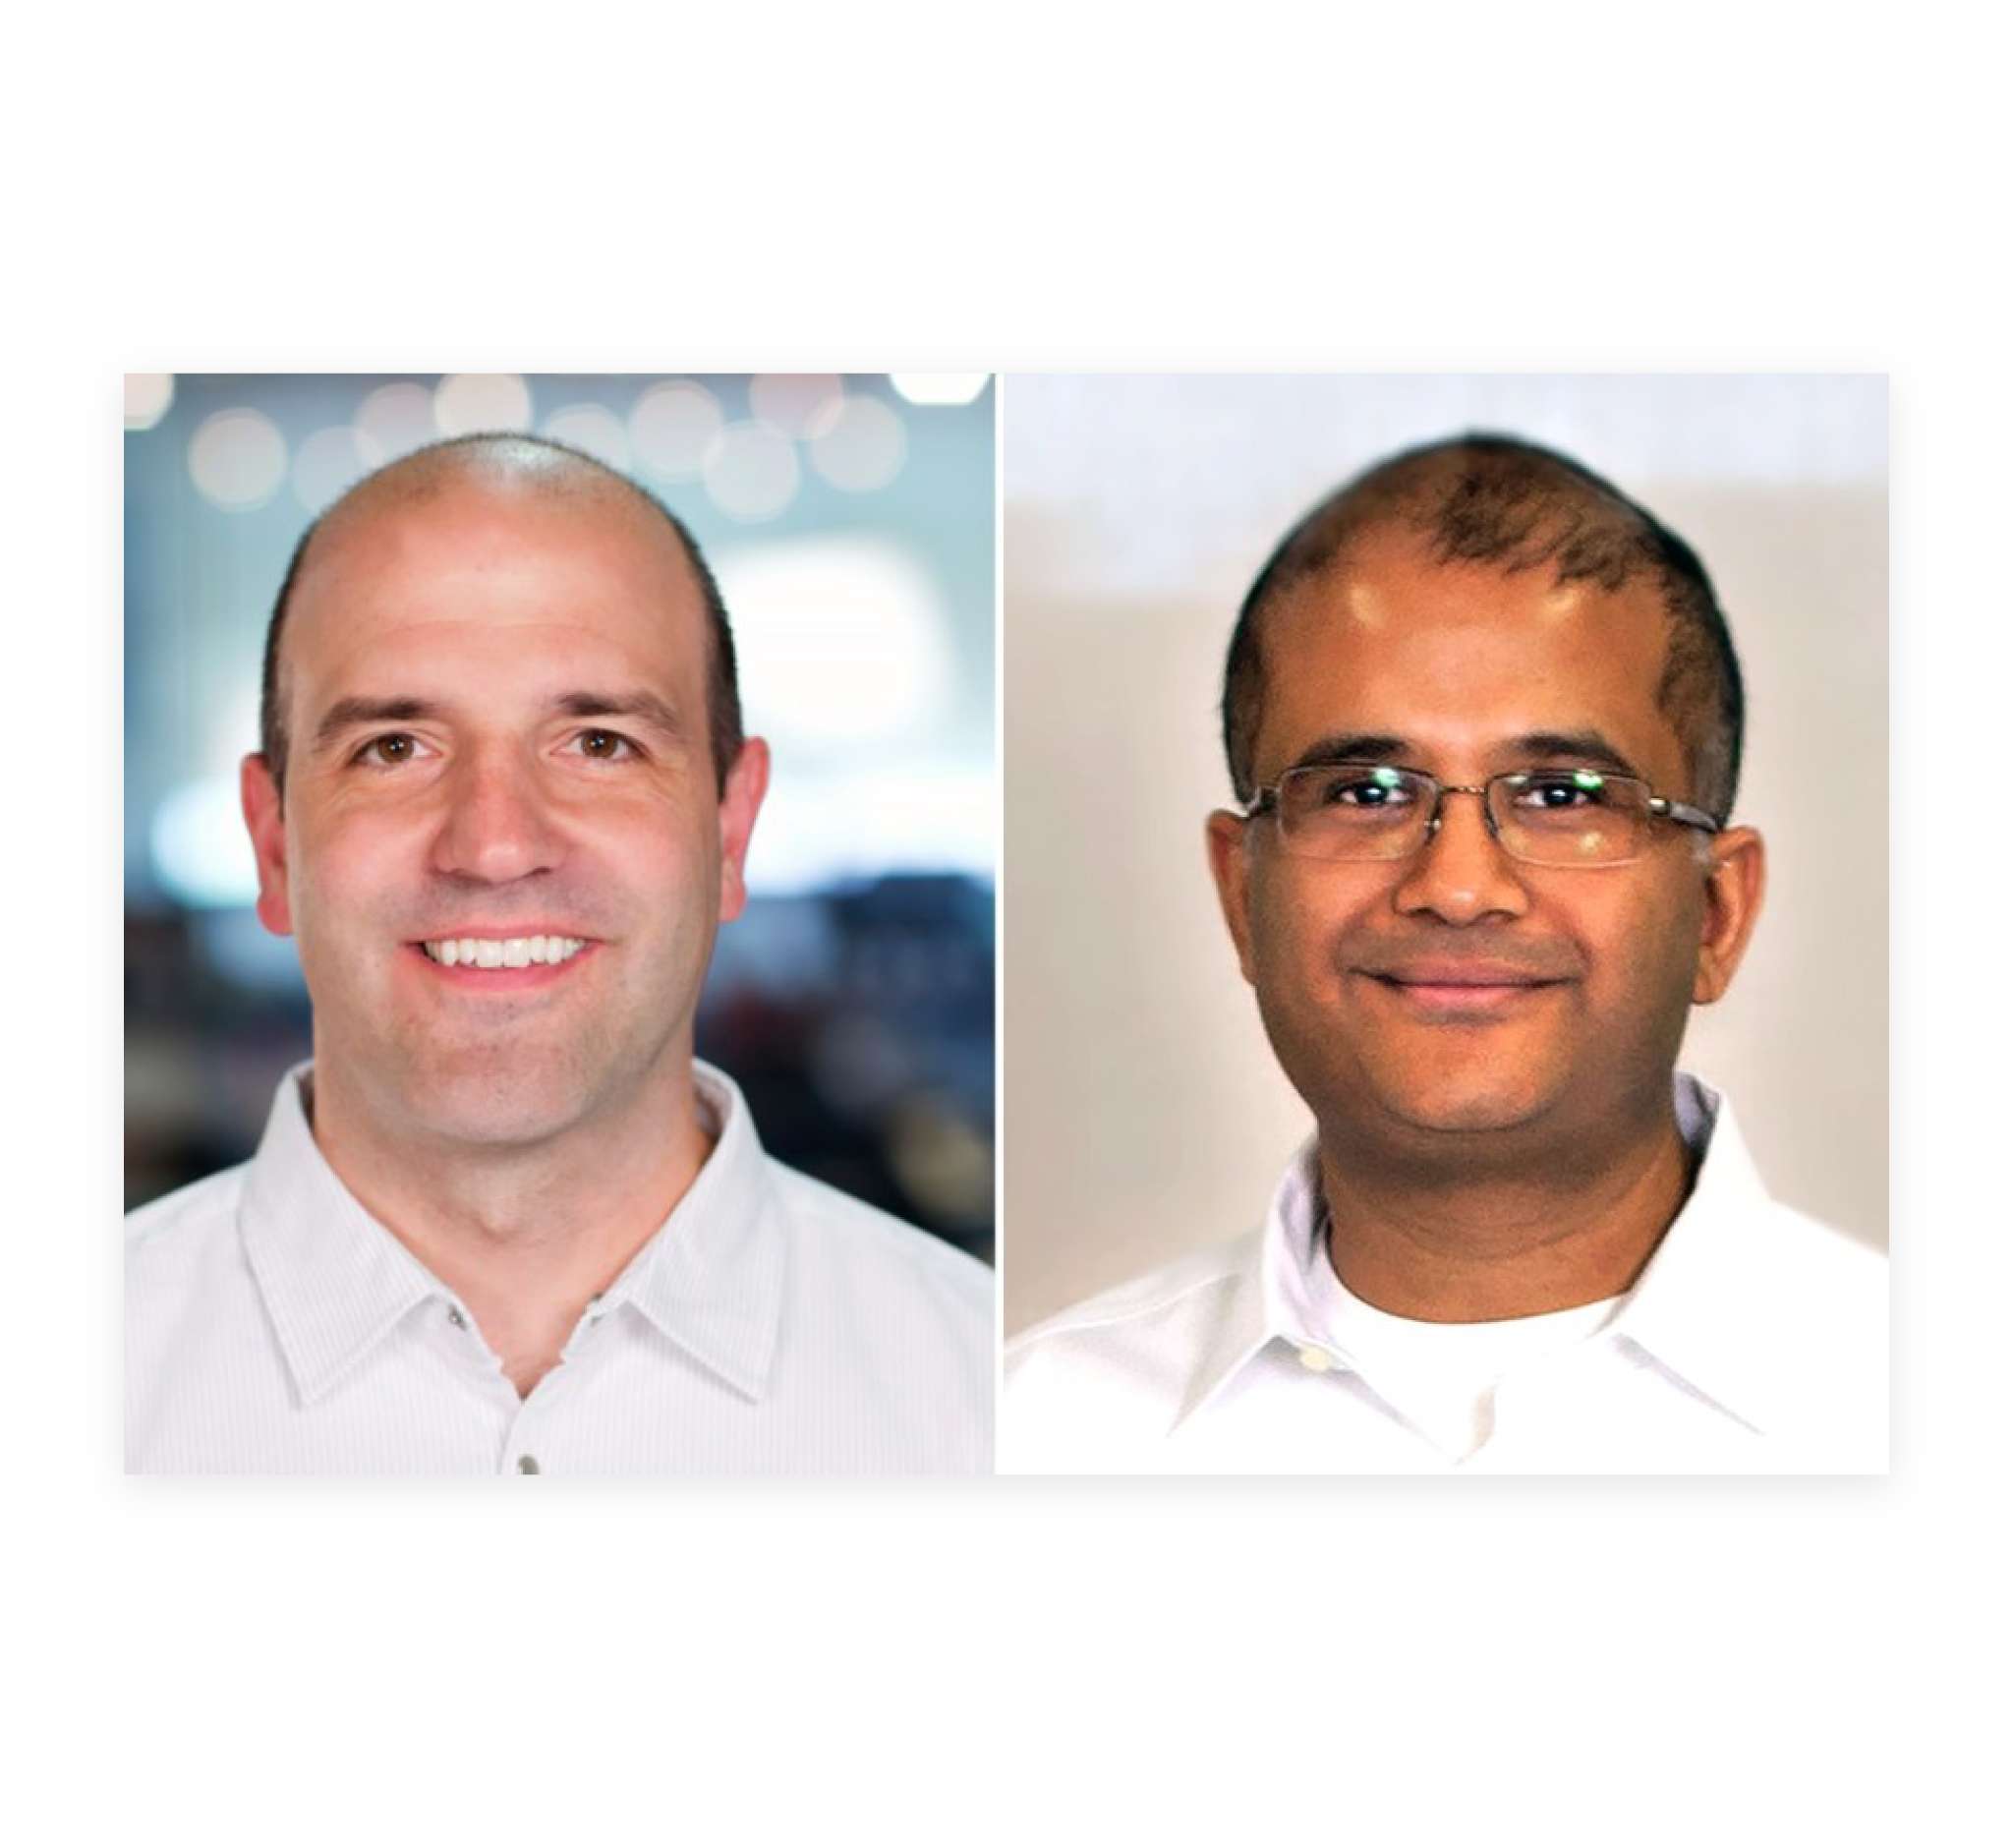 New Breed Board of Directors members Jim O'Neil and Vipul Shah.